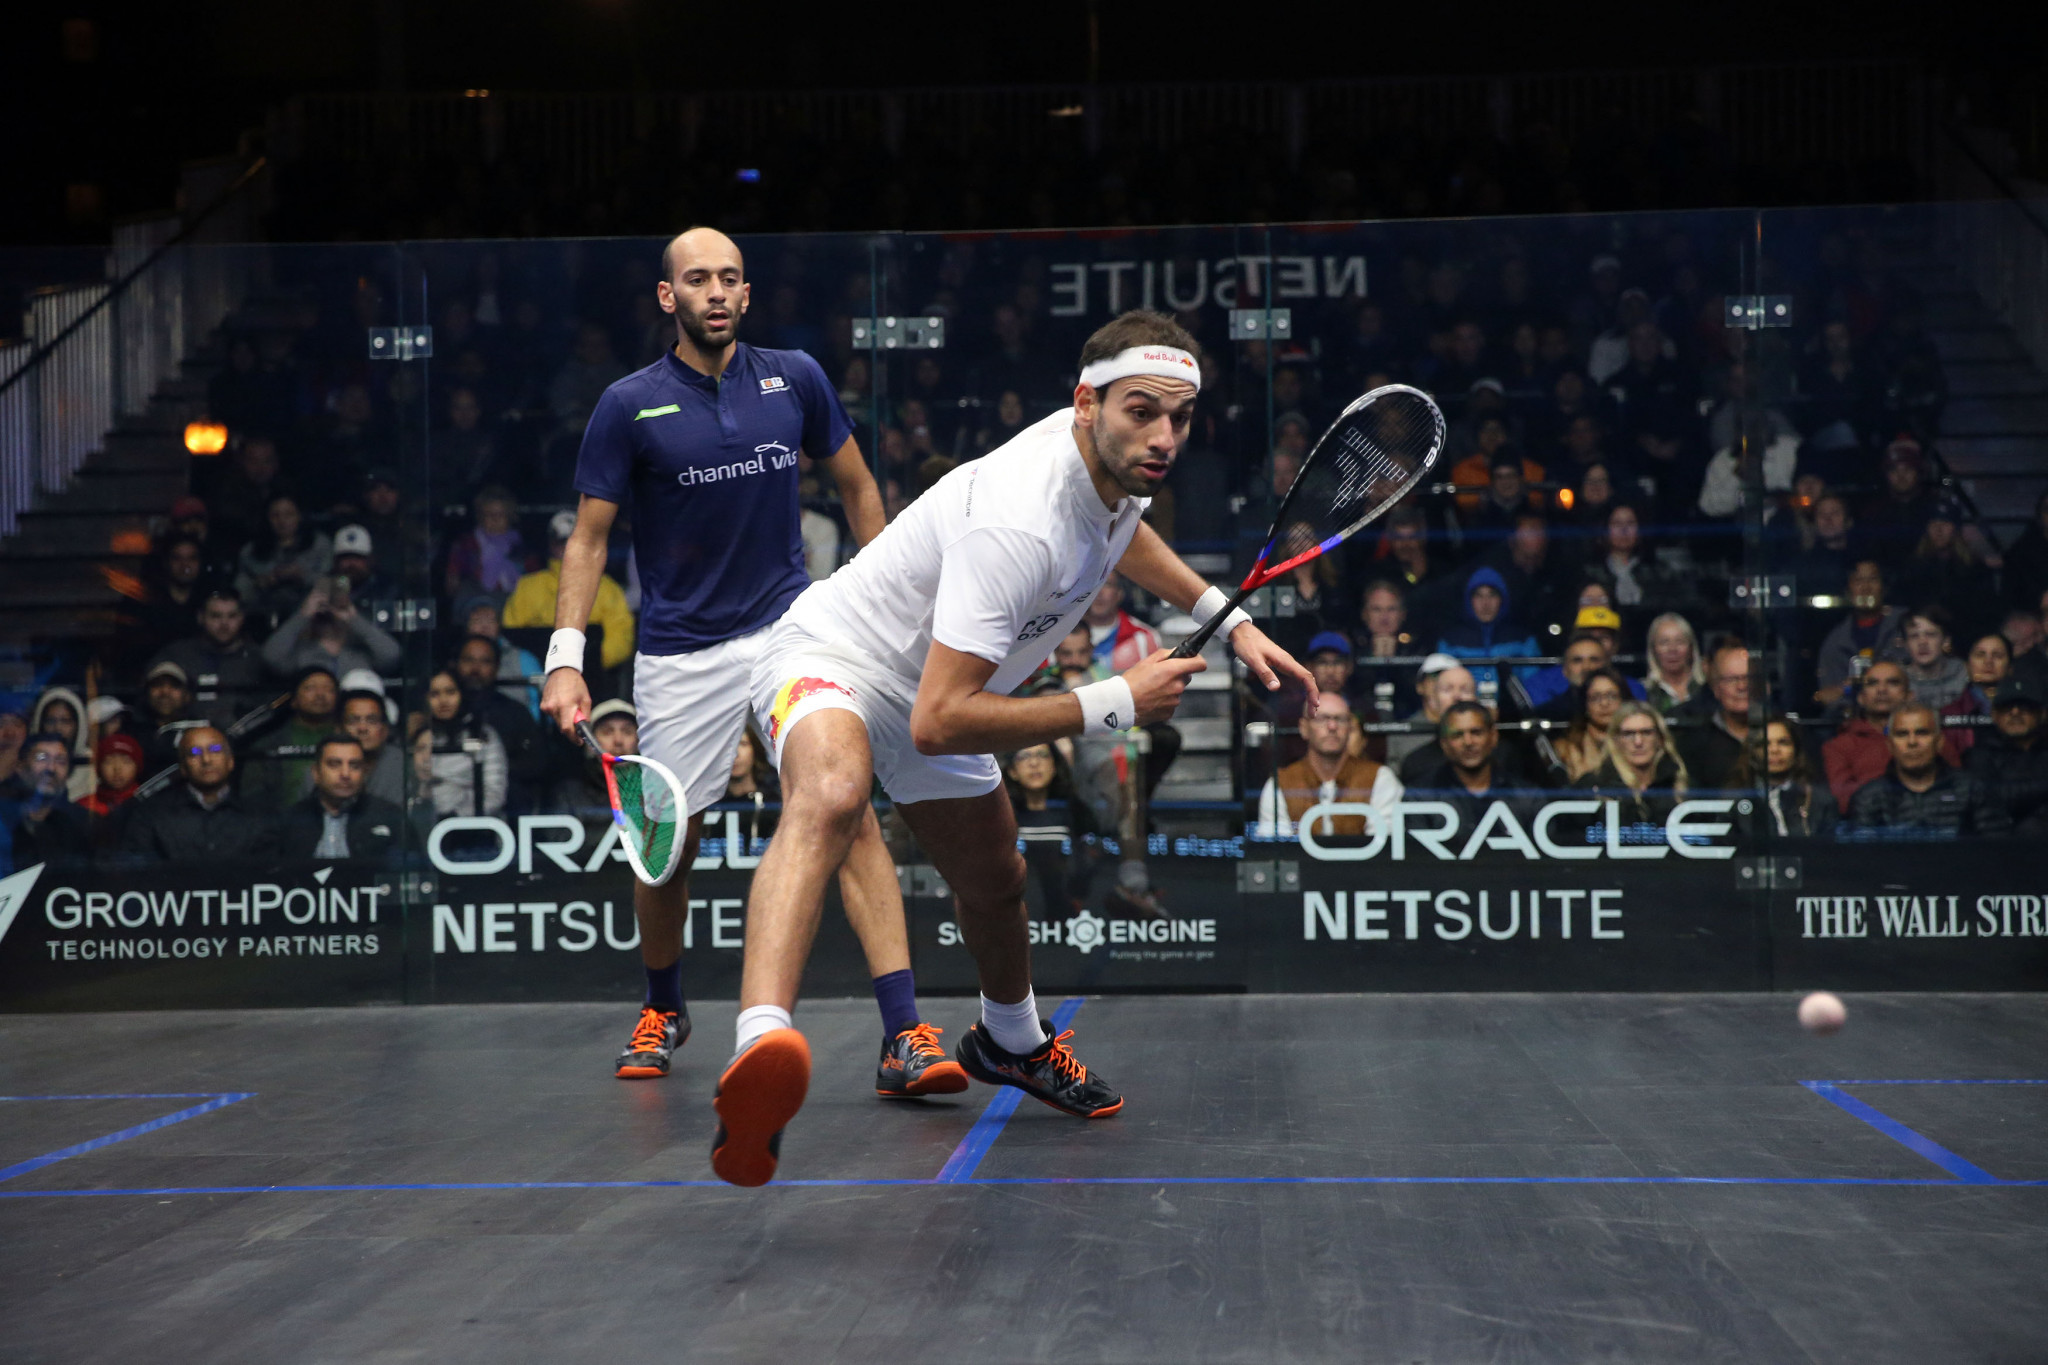 All-Egyptian finals booked at PSA Oracle Netsuite Open